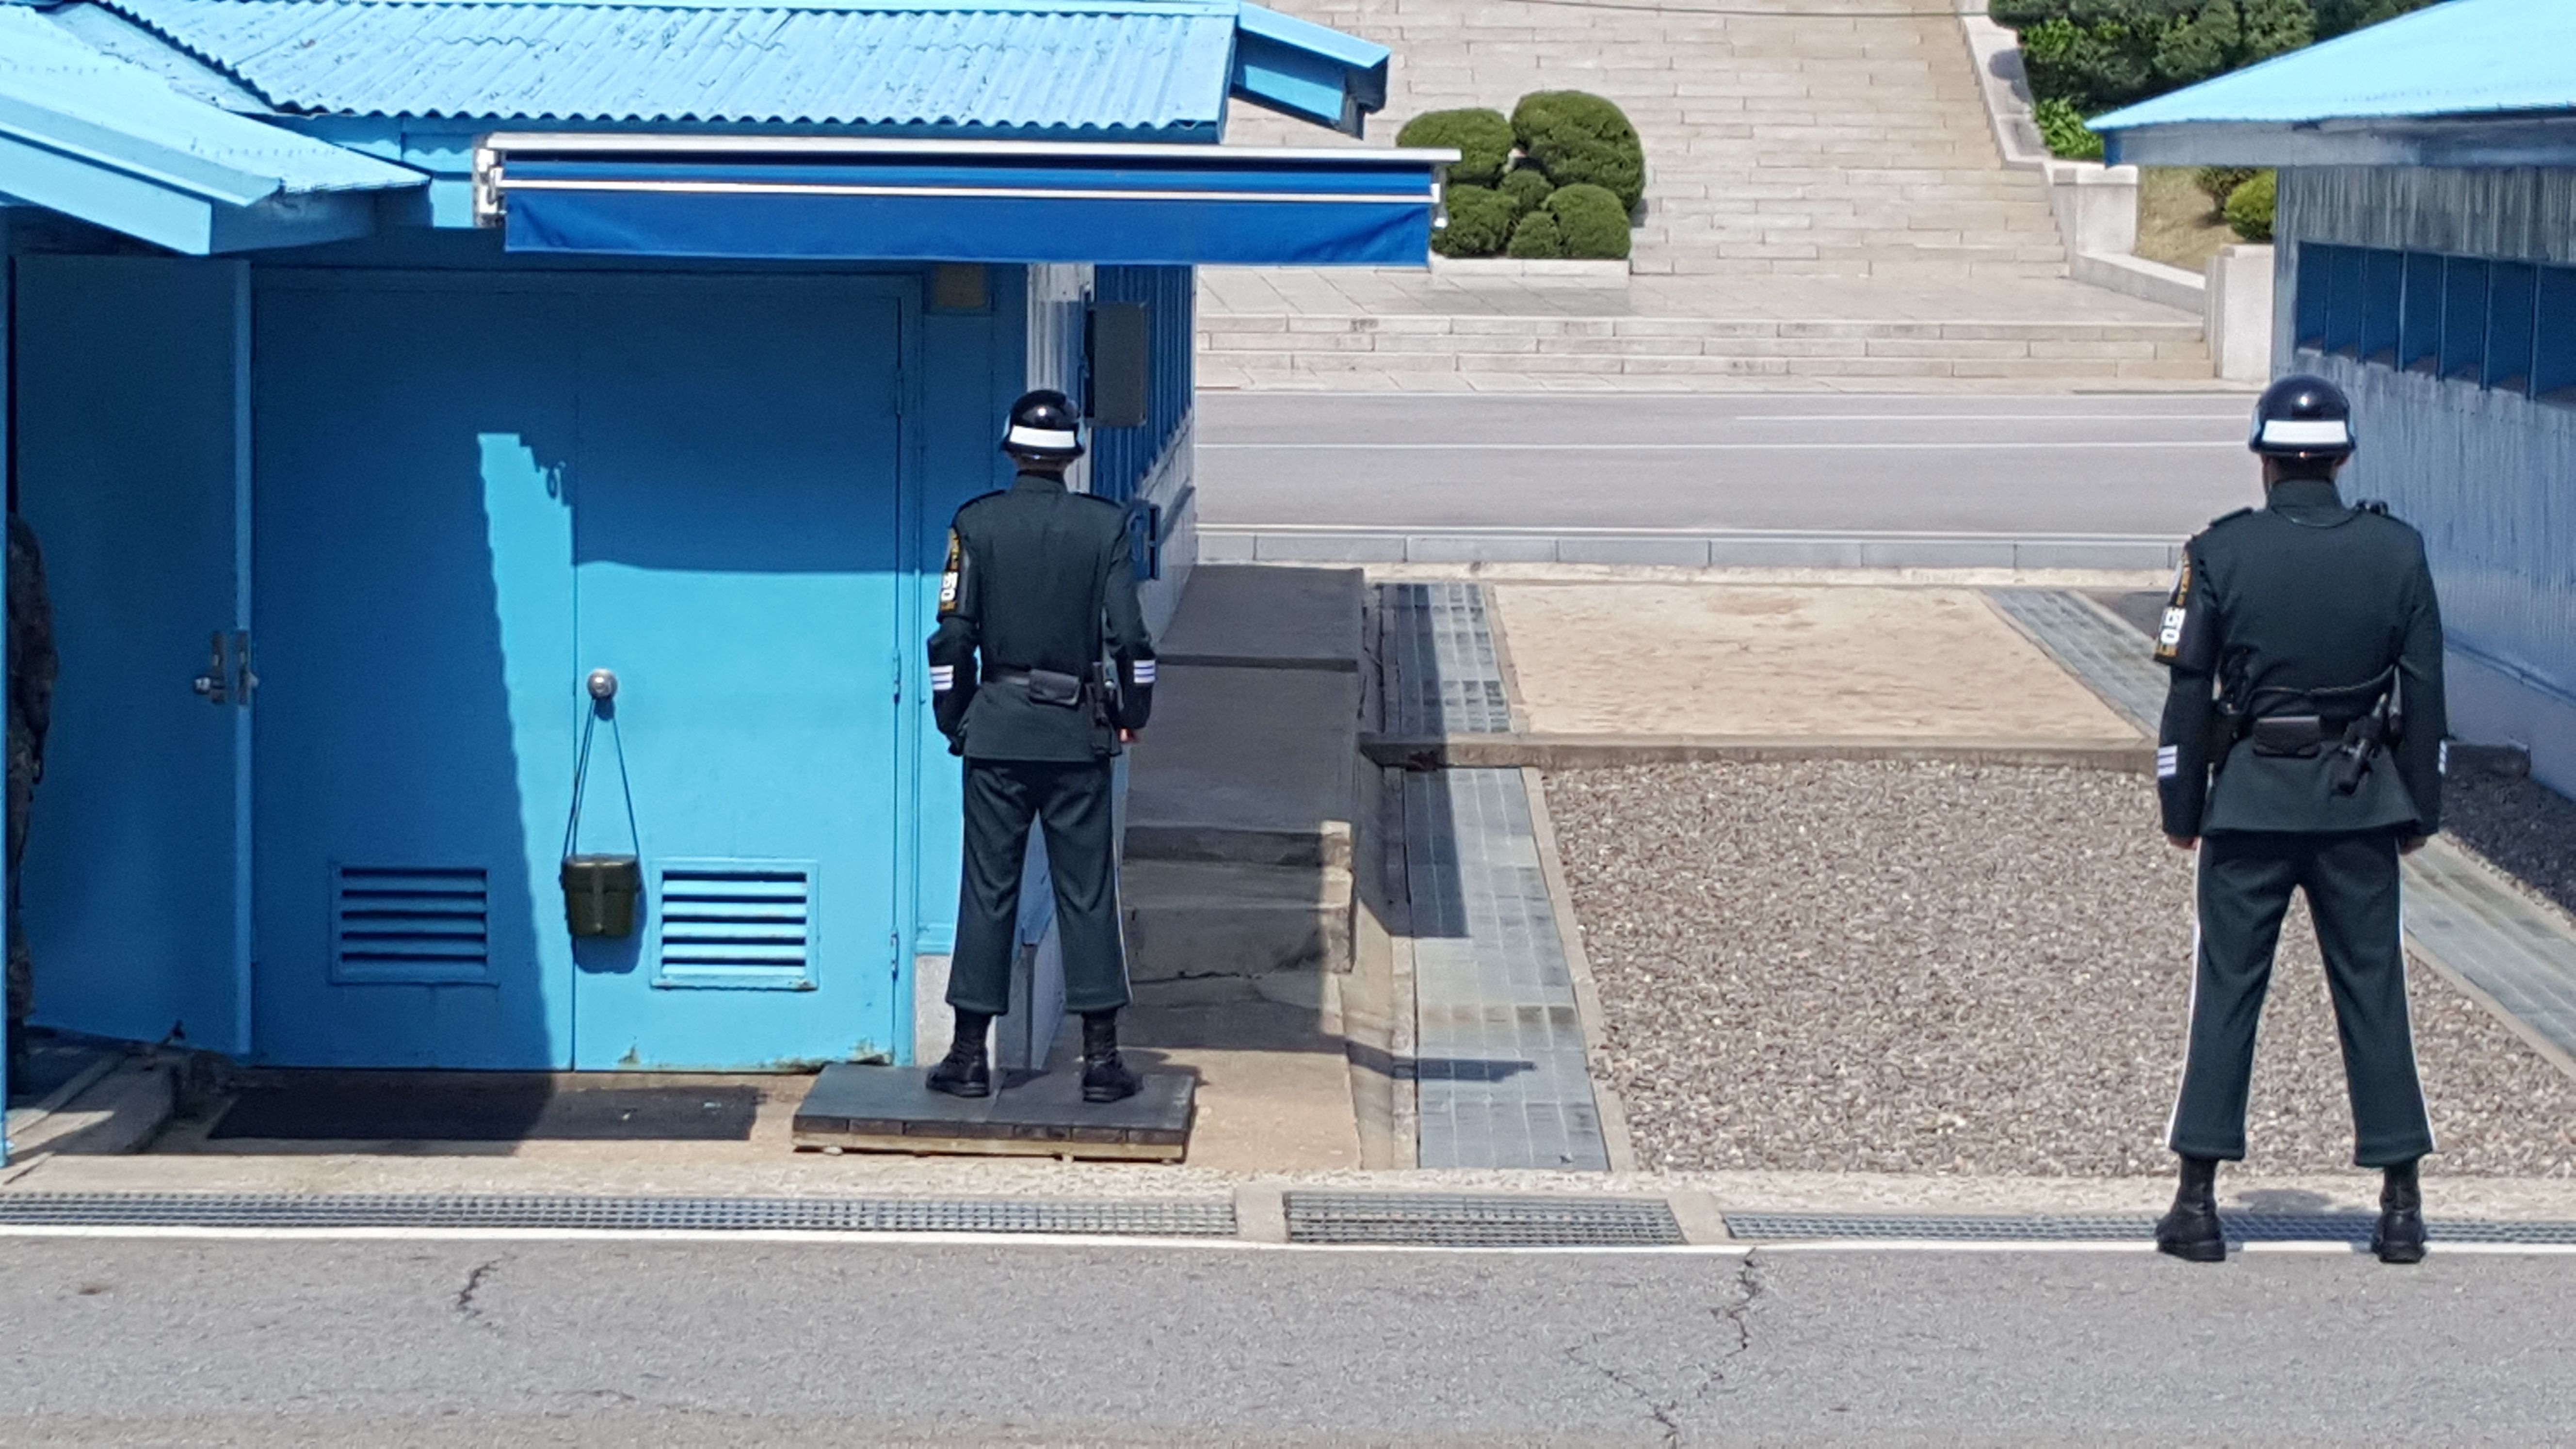 DMZ Korea – Into The Border  #Seoul #DMZ #Korea